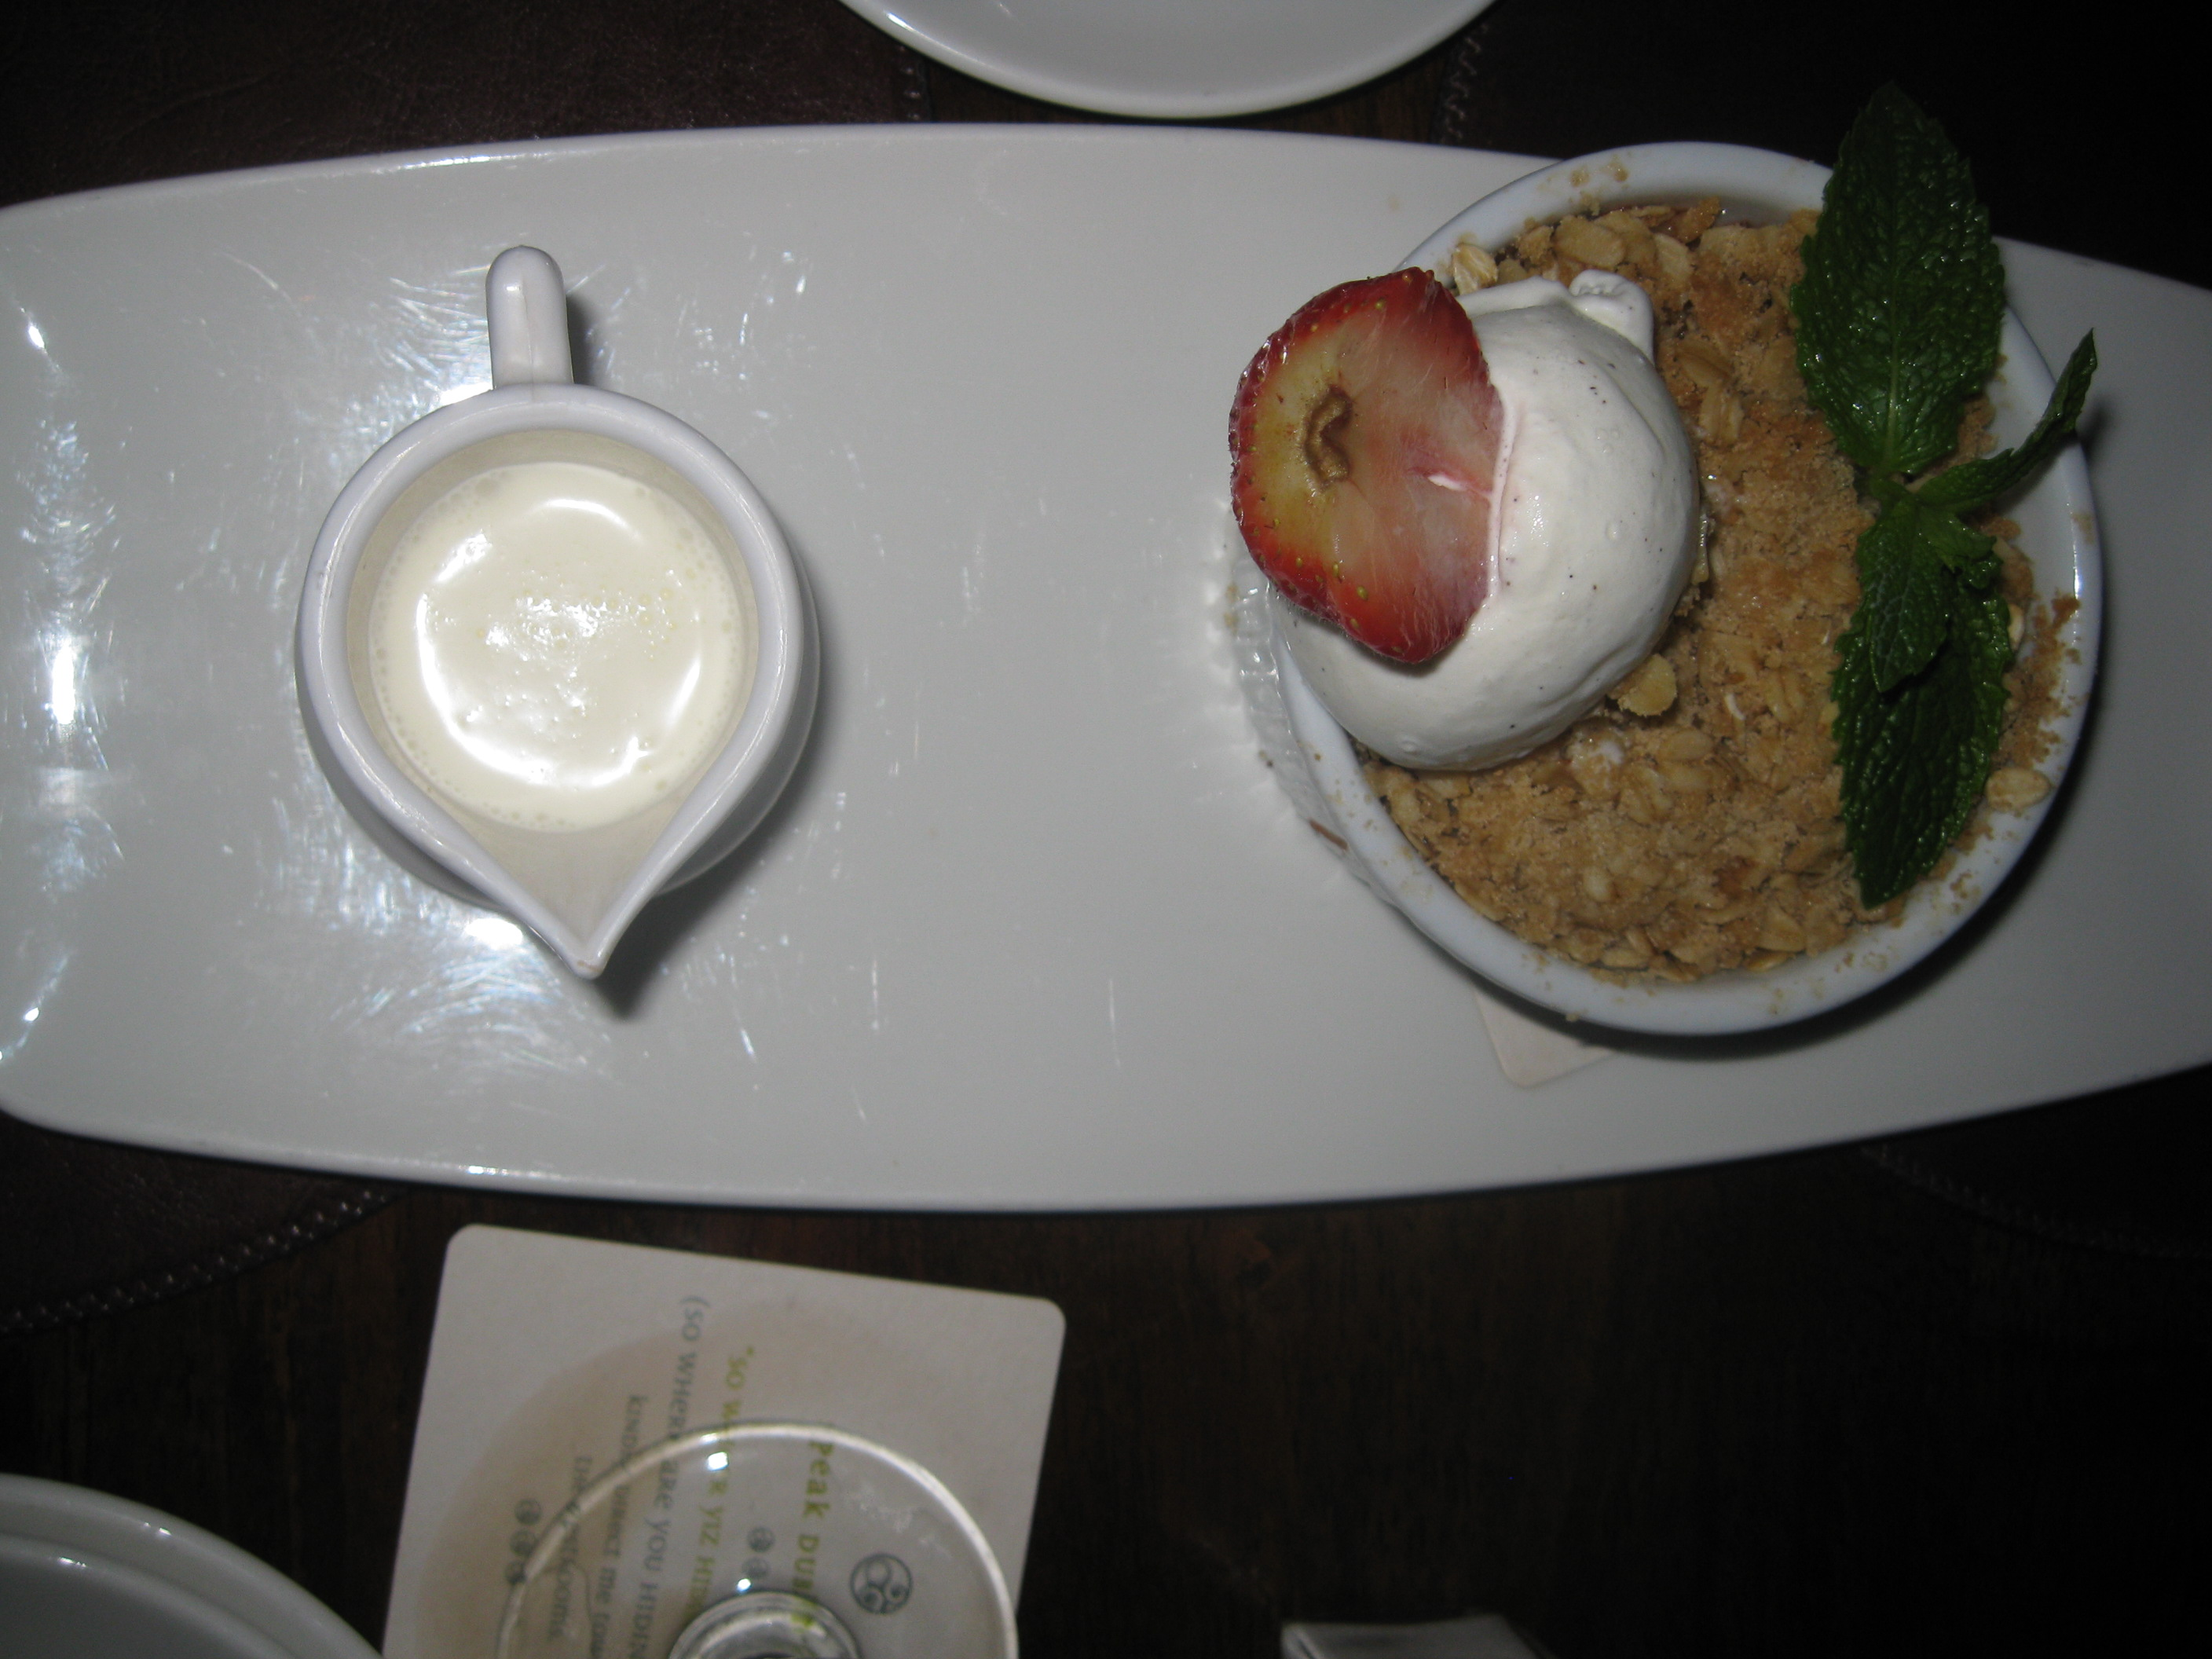 Raglan Road Strawberry Crumble with side of Cream